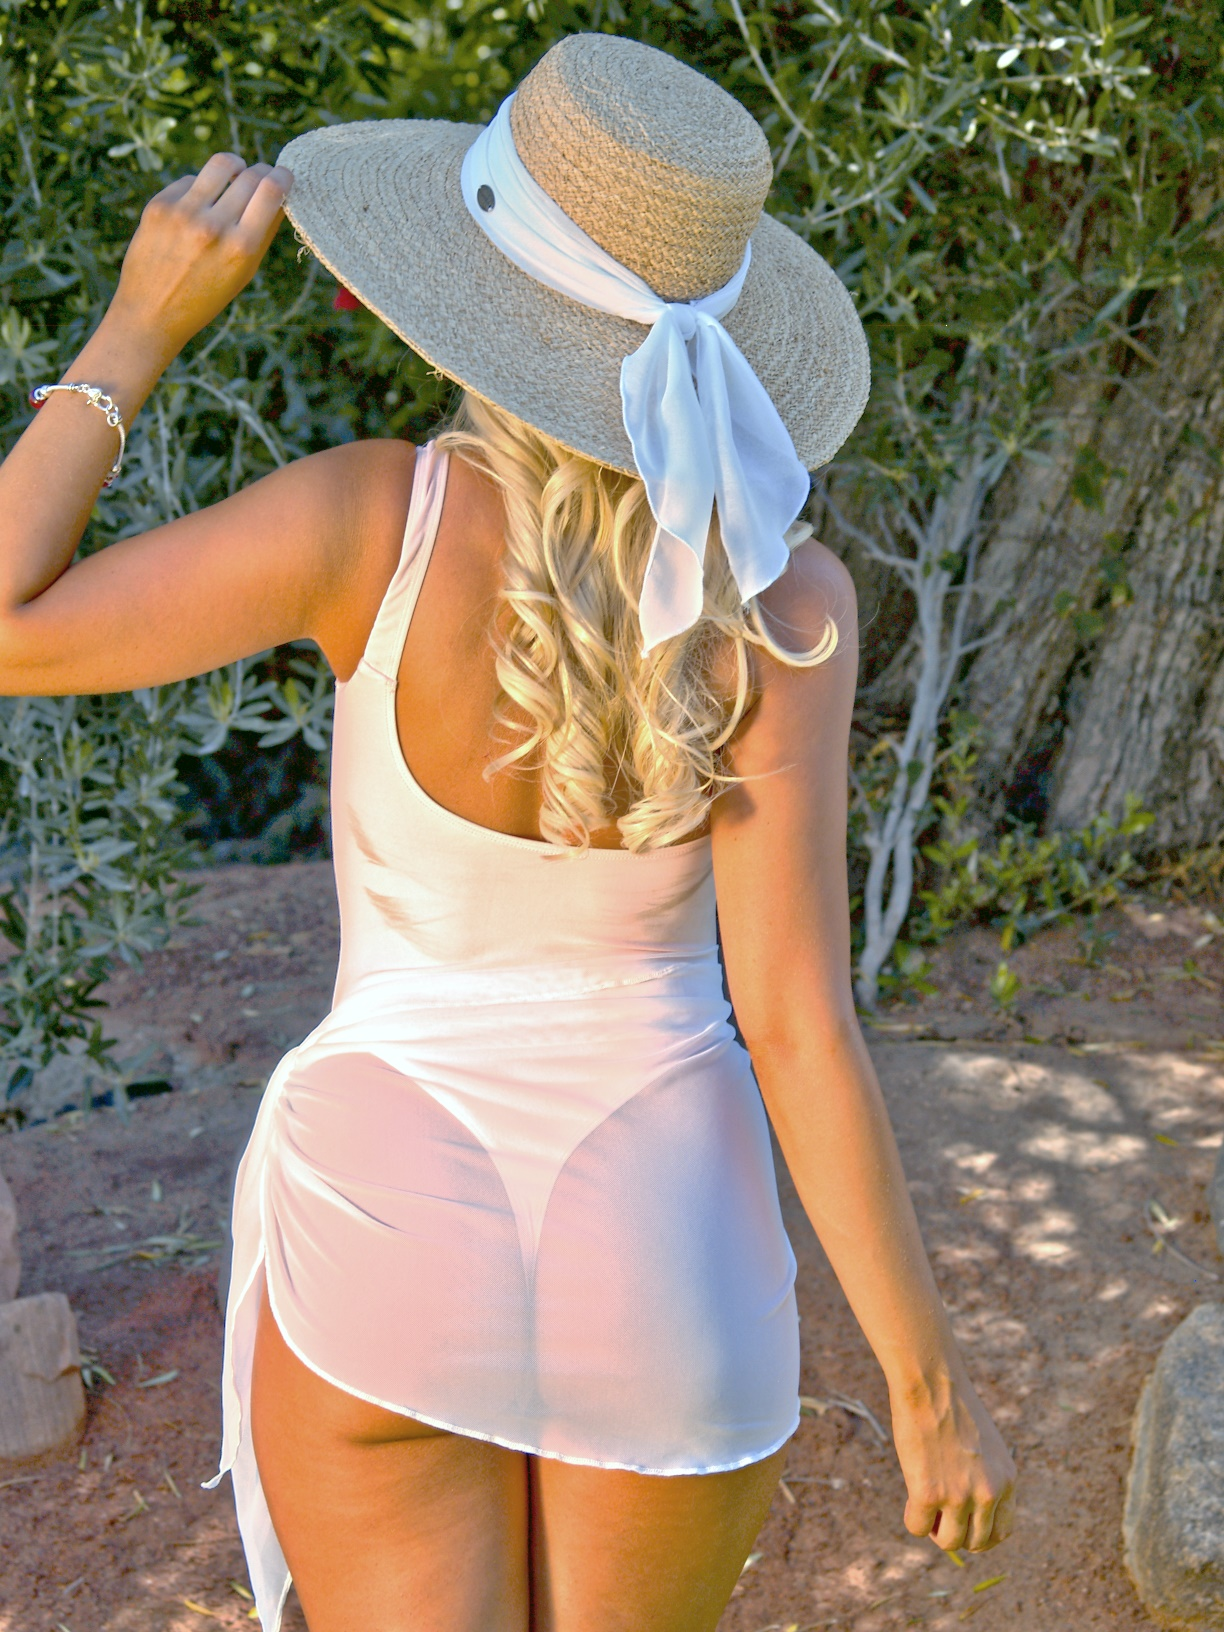 Sheer Elegance with our White Sheer Sarong . The equally sultry Sheer